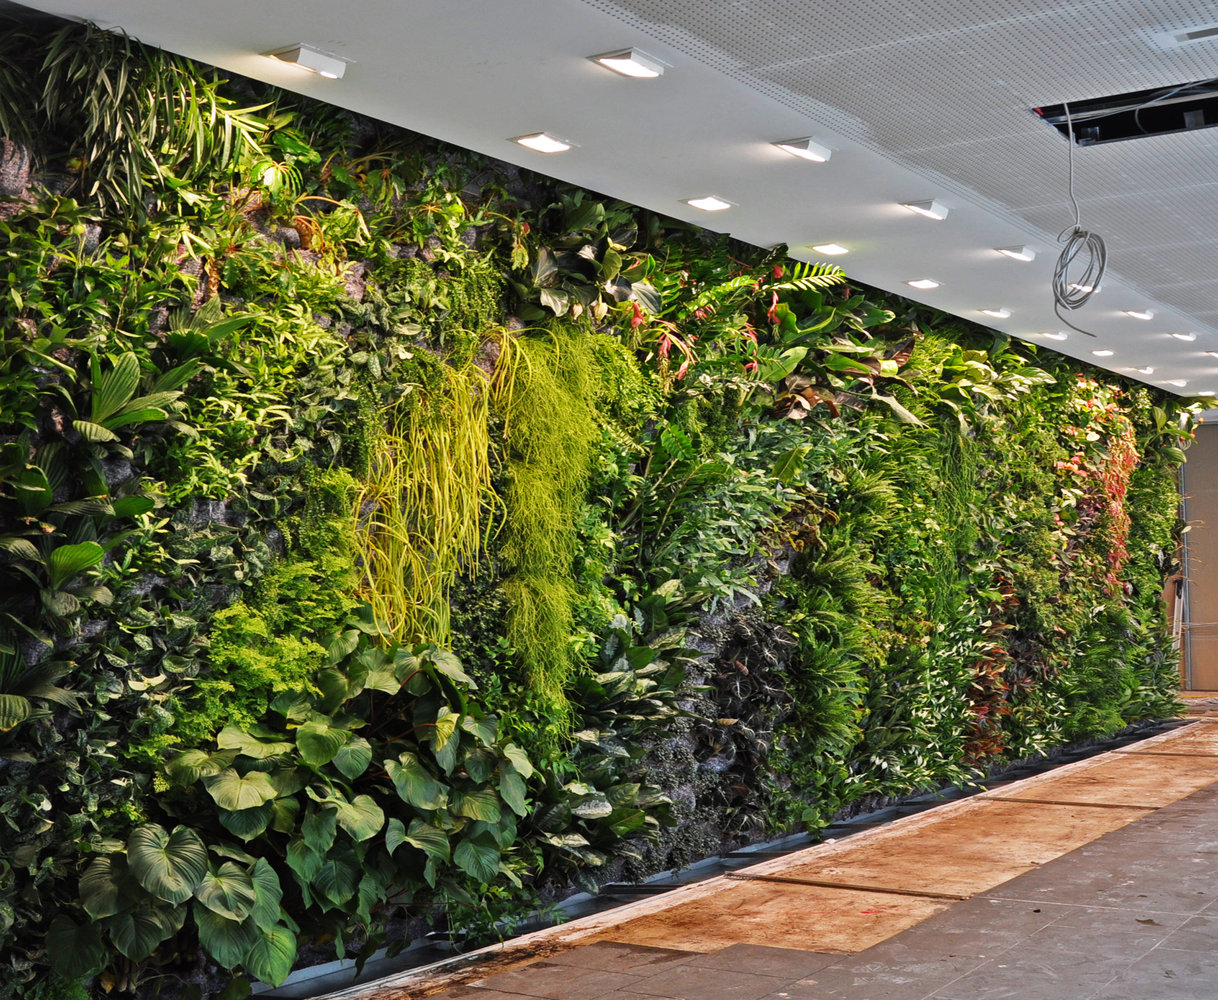 Fronius headquarters wels austria vertical garden for Vertical garden wall systems